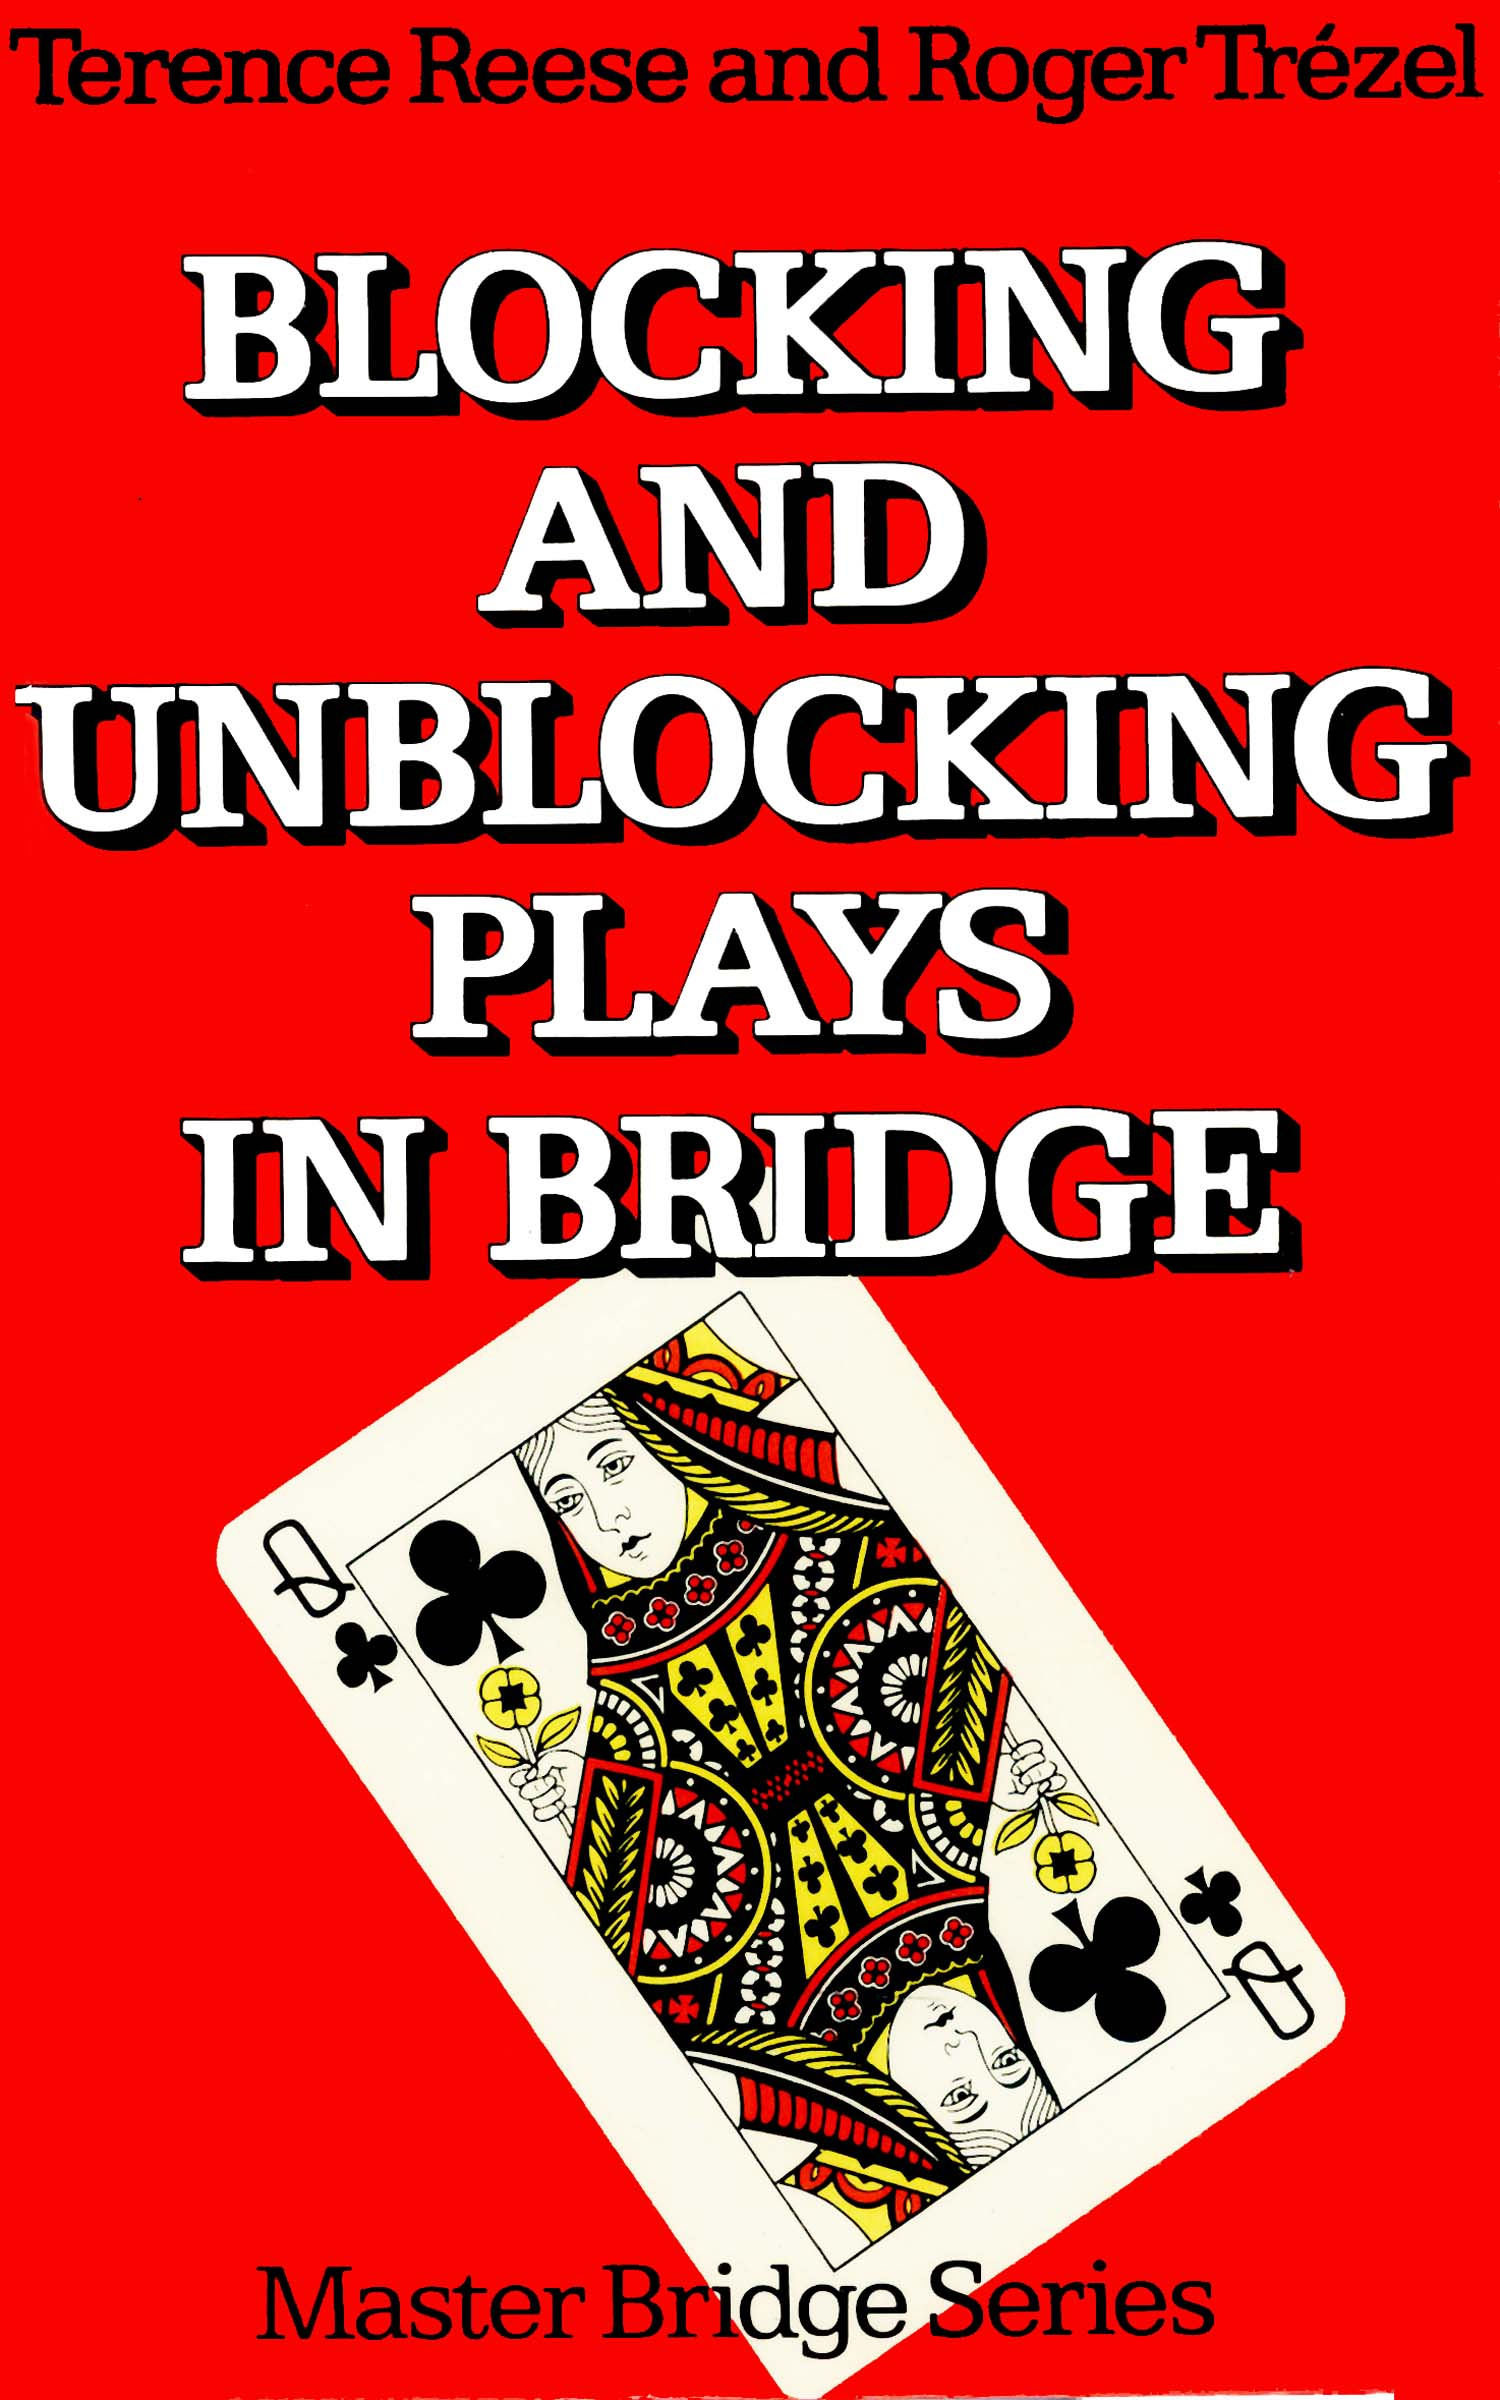 Blocking and Unblocking Plays in Bridge